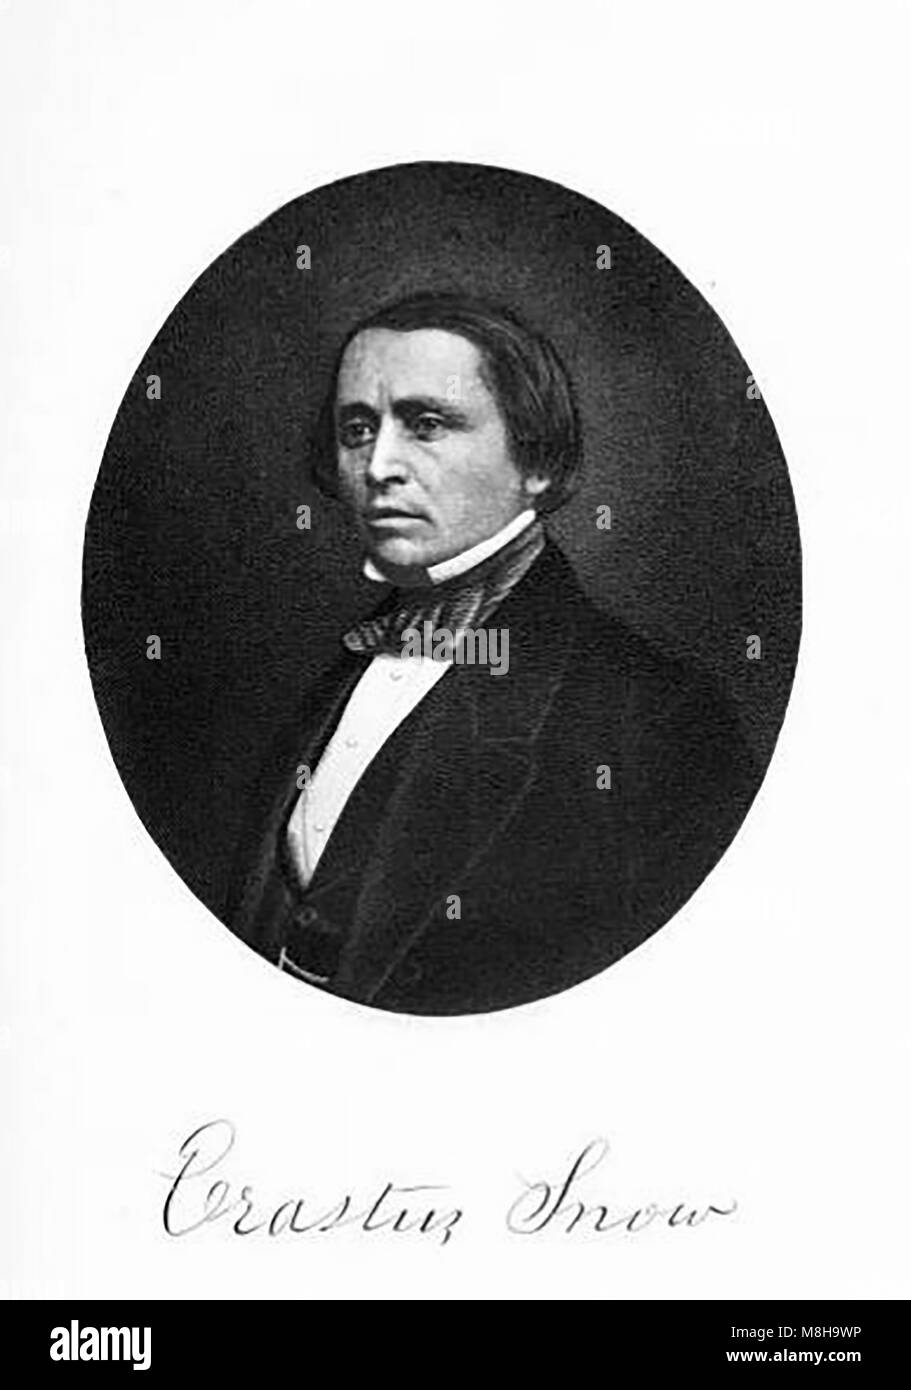 Portrait of US Mormon Pioneer Erastus Snow (1818-1888) - Stock Image